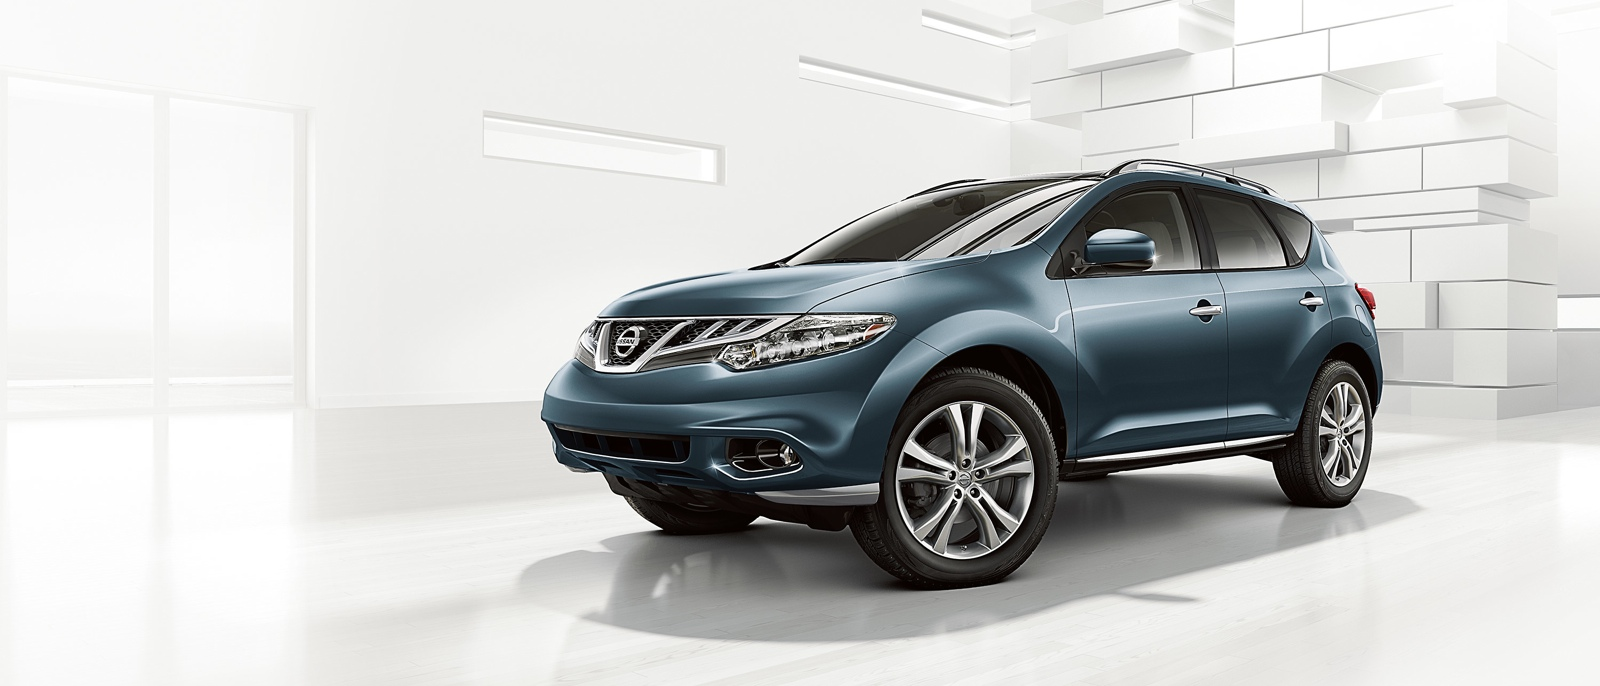 2014 Nissan Murano Indianapolis Plainfield | Andy Mohr Avon Nissan